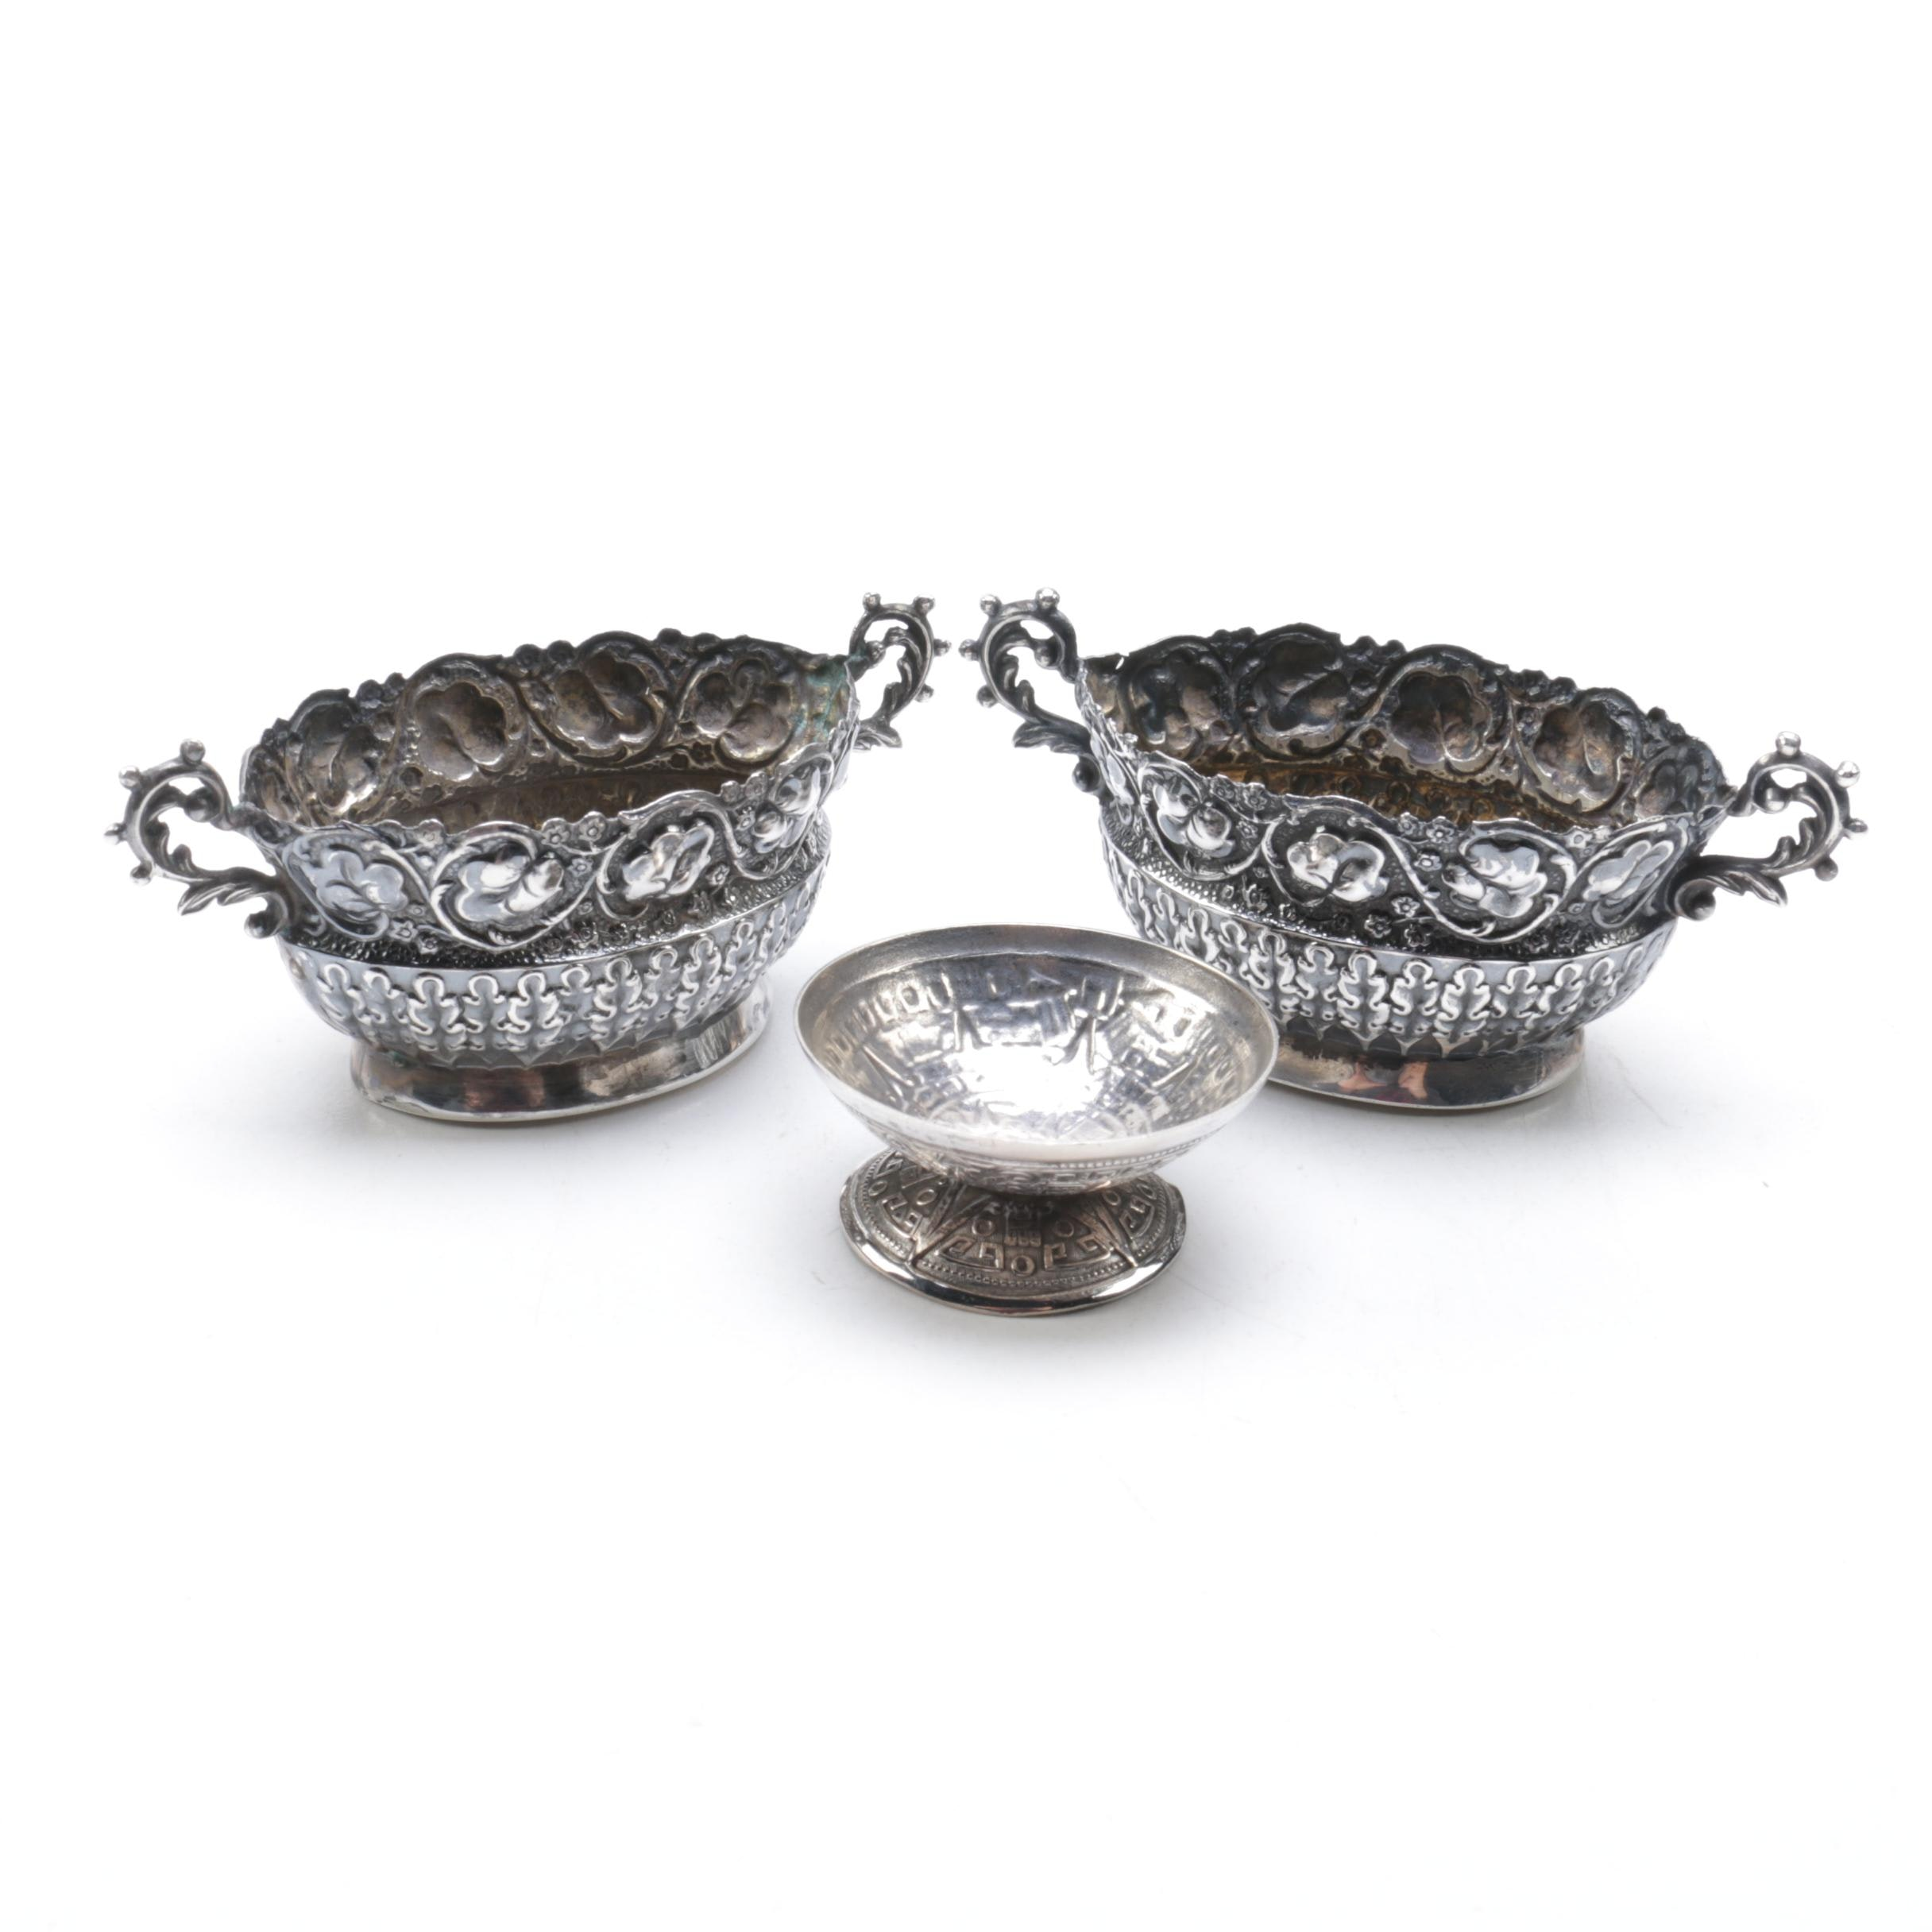 Sterling Silver Tableware Featuring William Vale & Sons